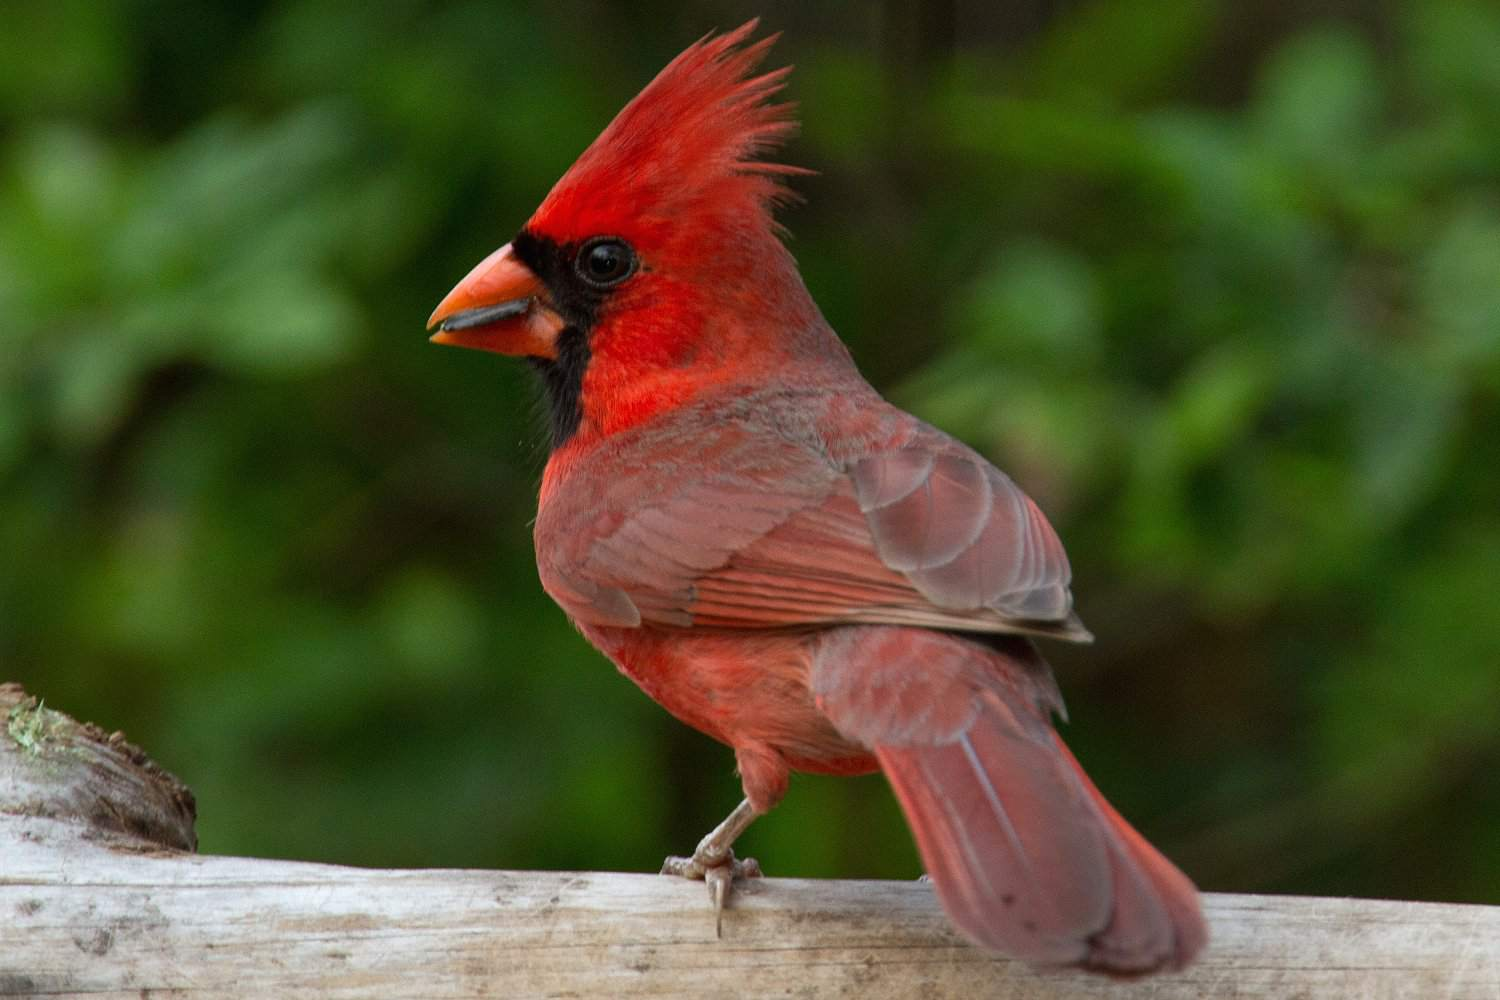 Northern Cardinal, state bird of Illinois, standing on a fence.